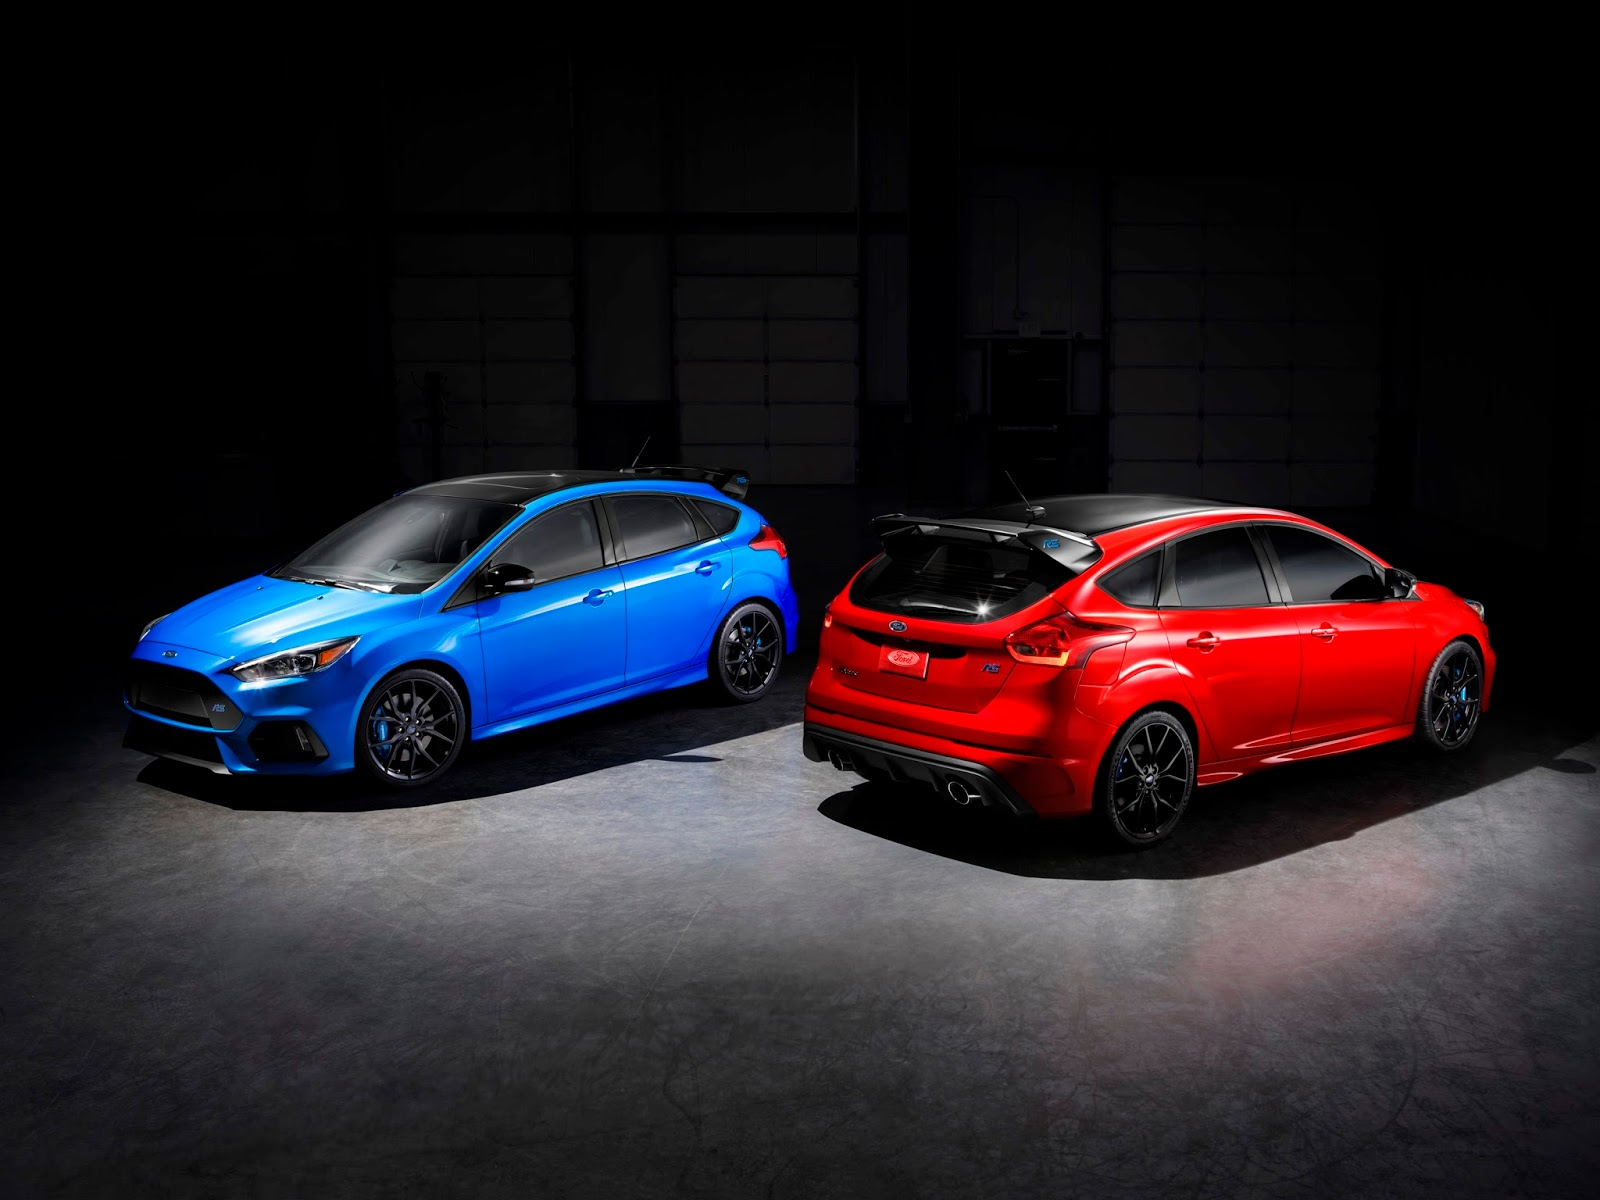 North America Image 1 Ford Focus RS Option Pack Edition : Το τέλειο βελτιώθηκε!